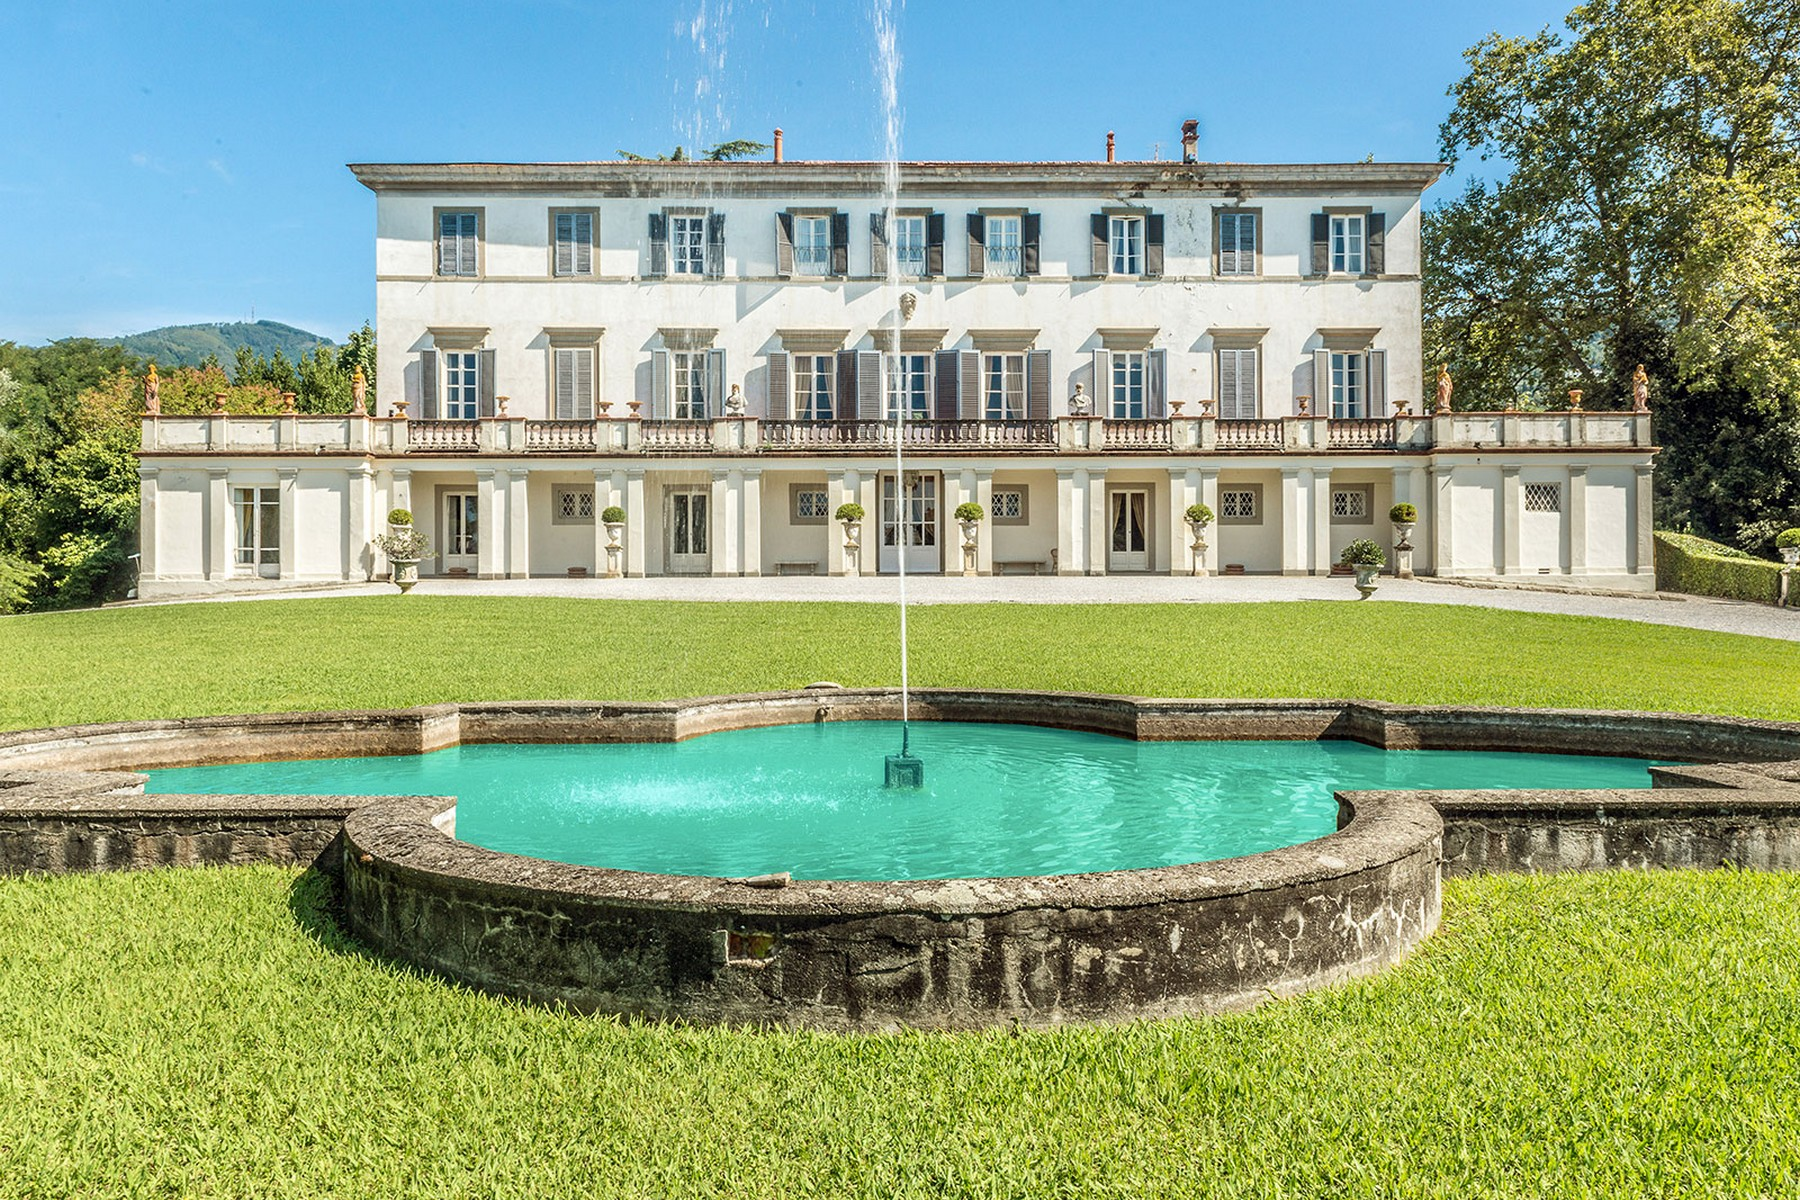 Single Family Home for sale in Camigliano, Lucca, Lucca   , Italy